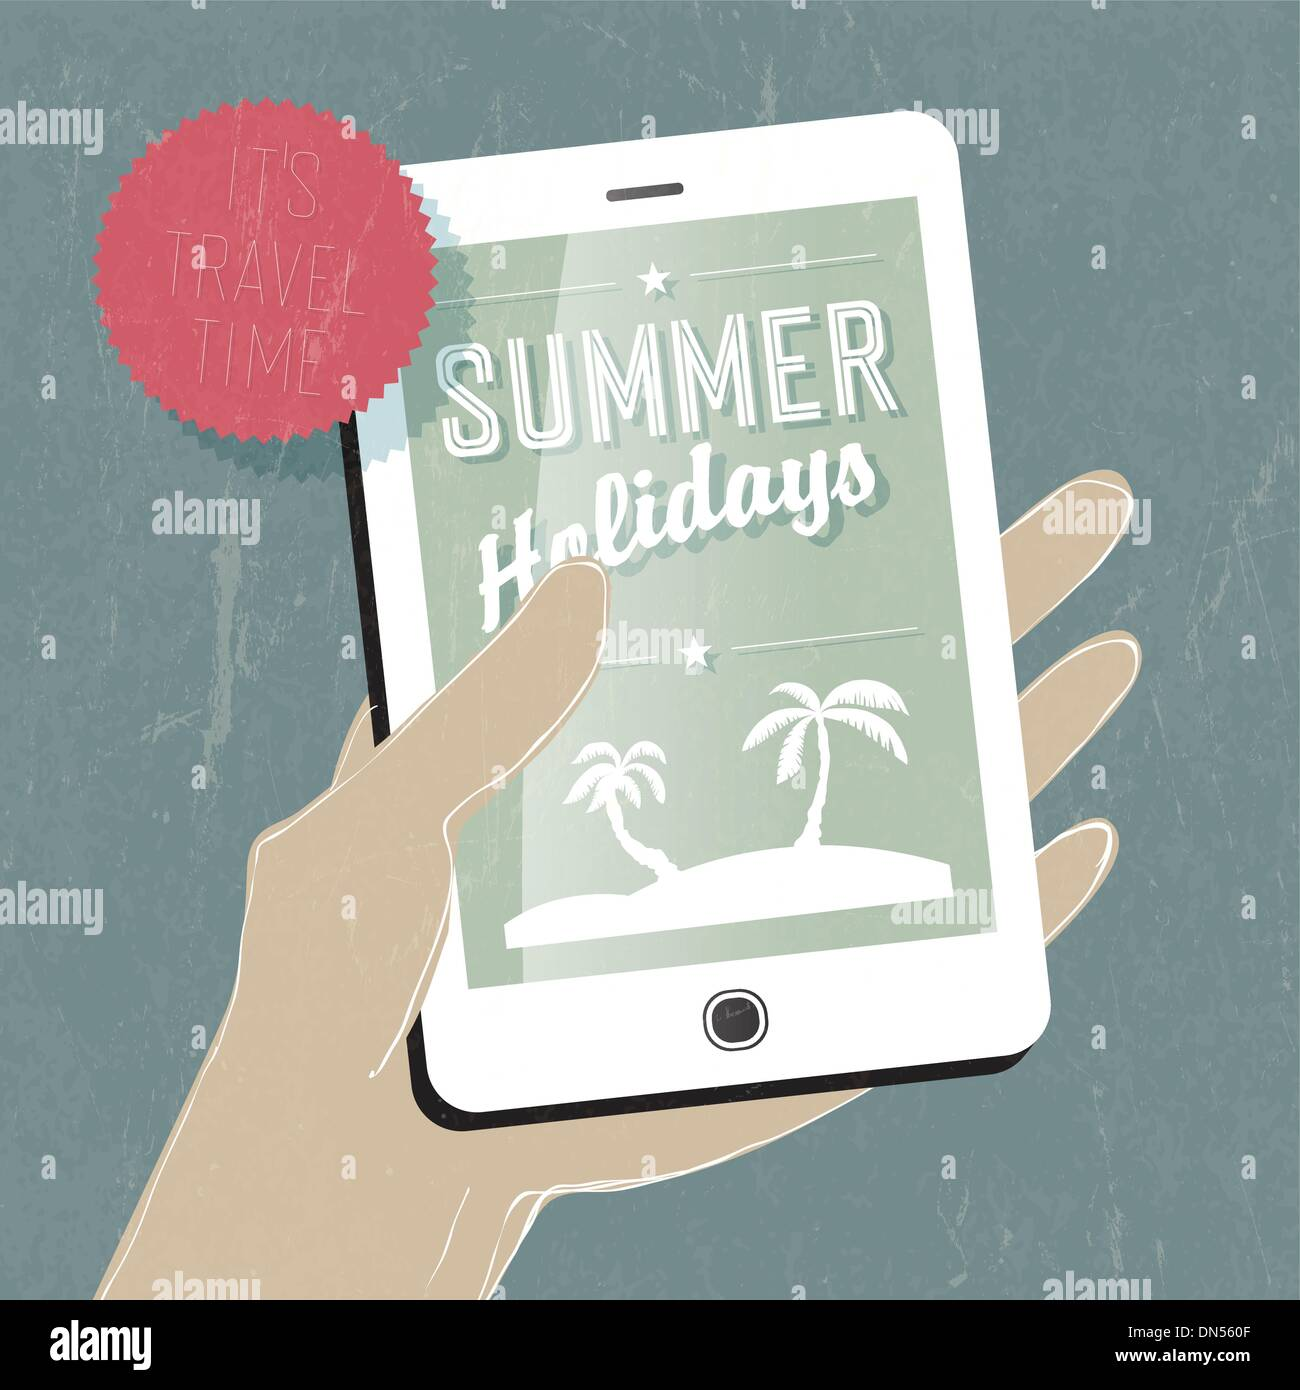 Summer travel conceptual illustration. Smart phone in hand. Vect - Stock Image